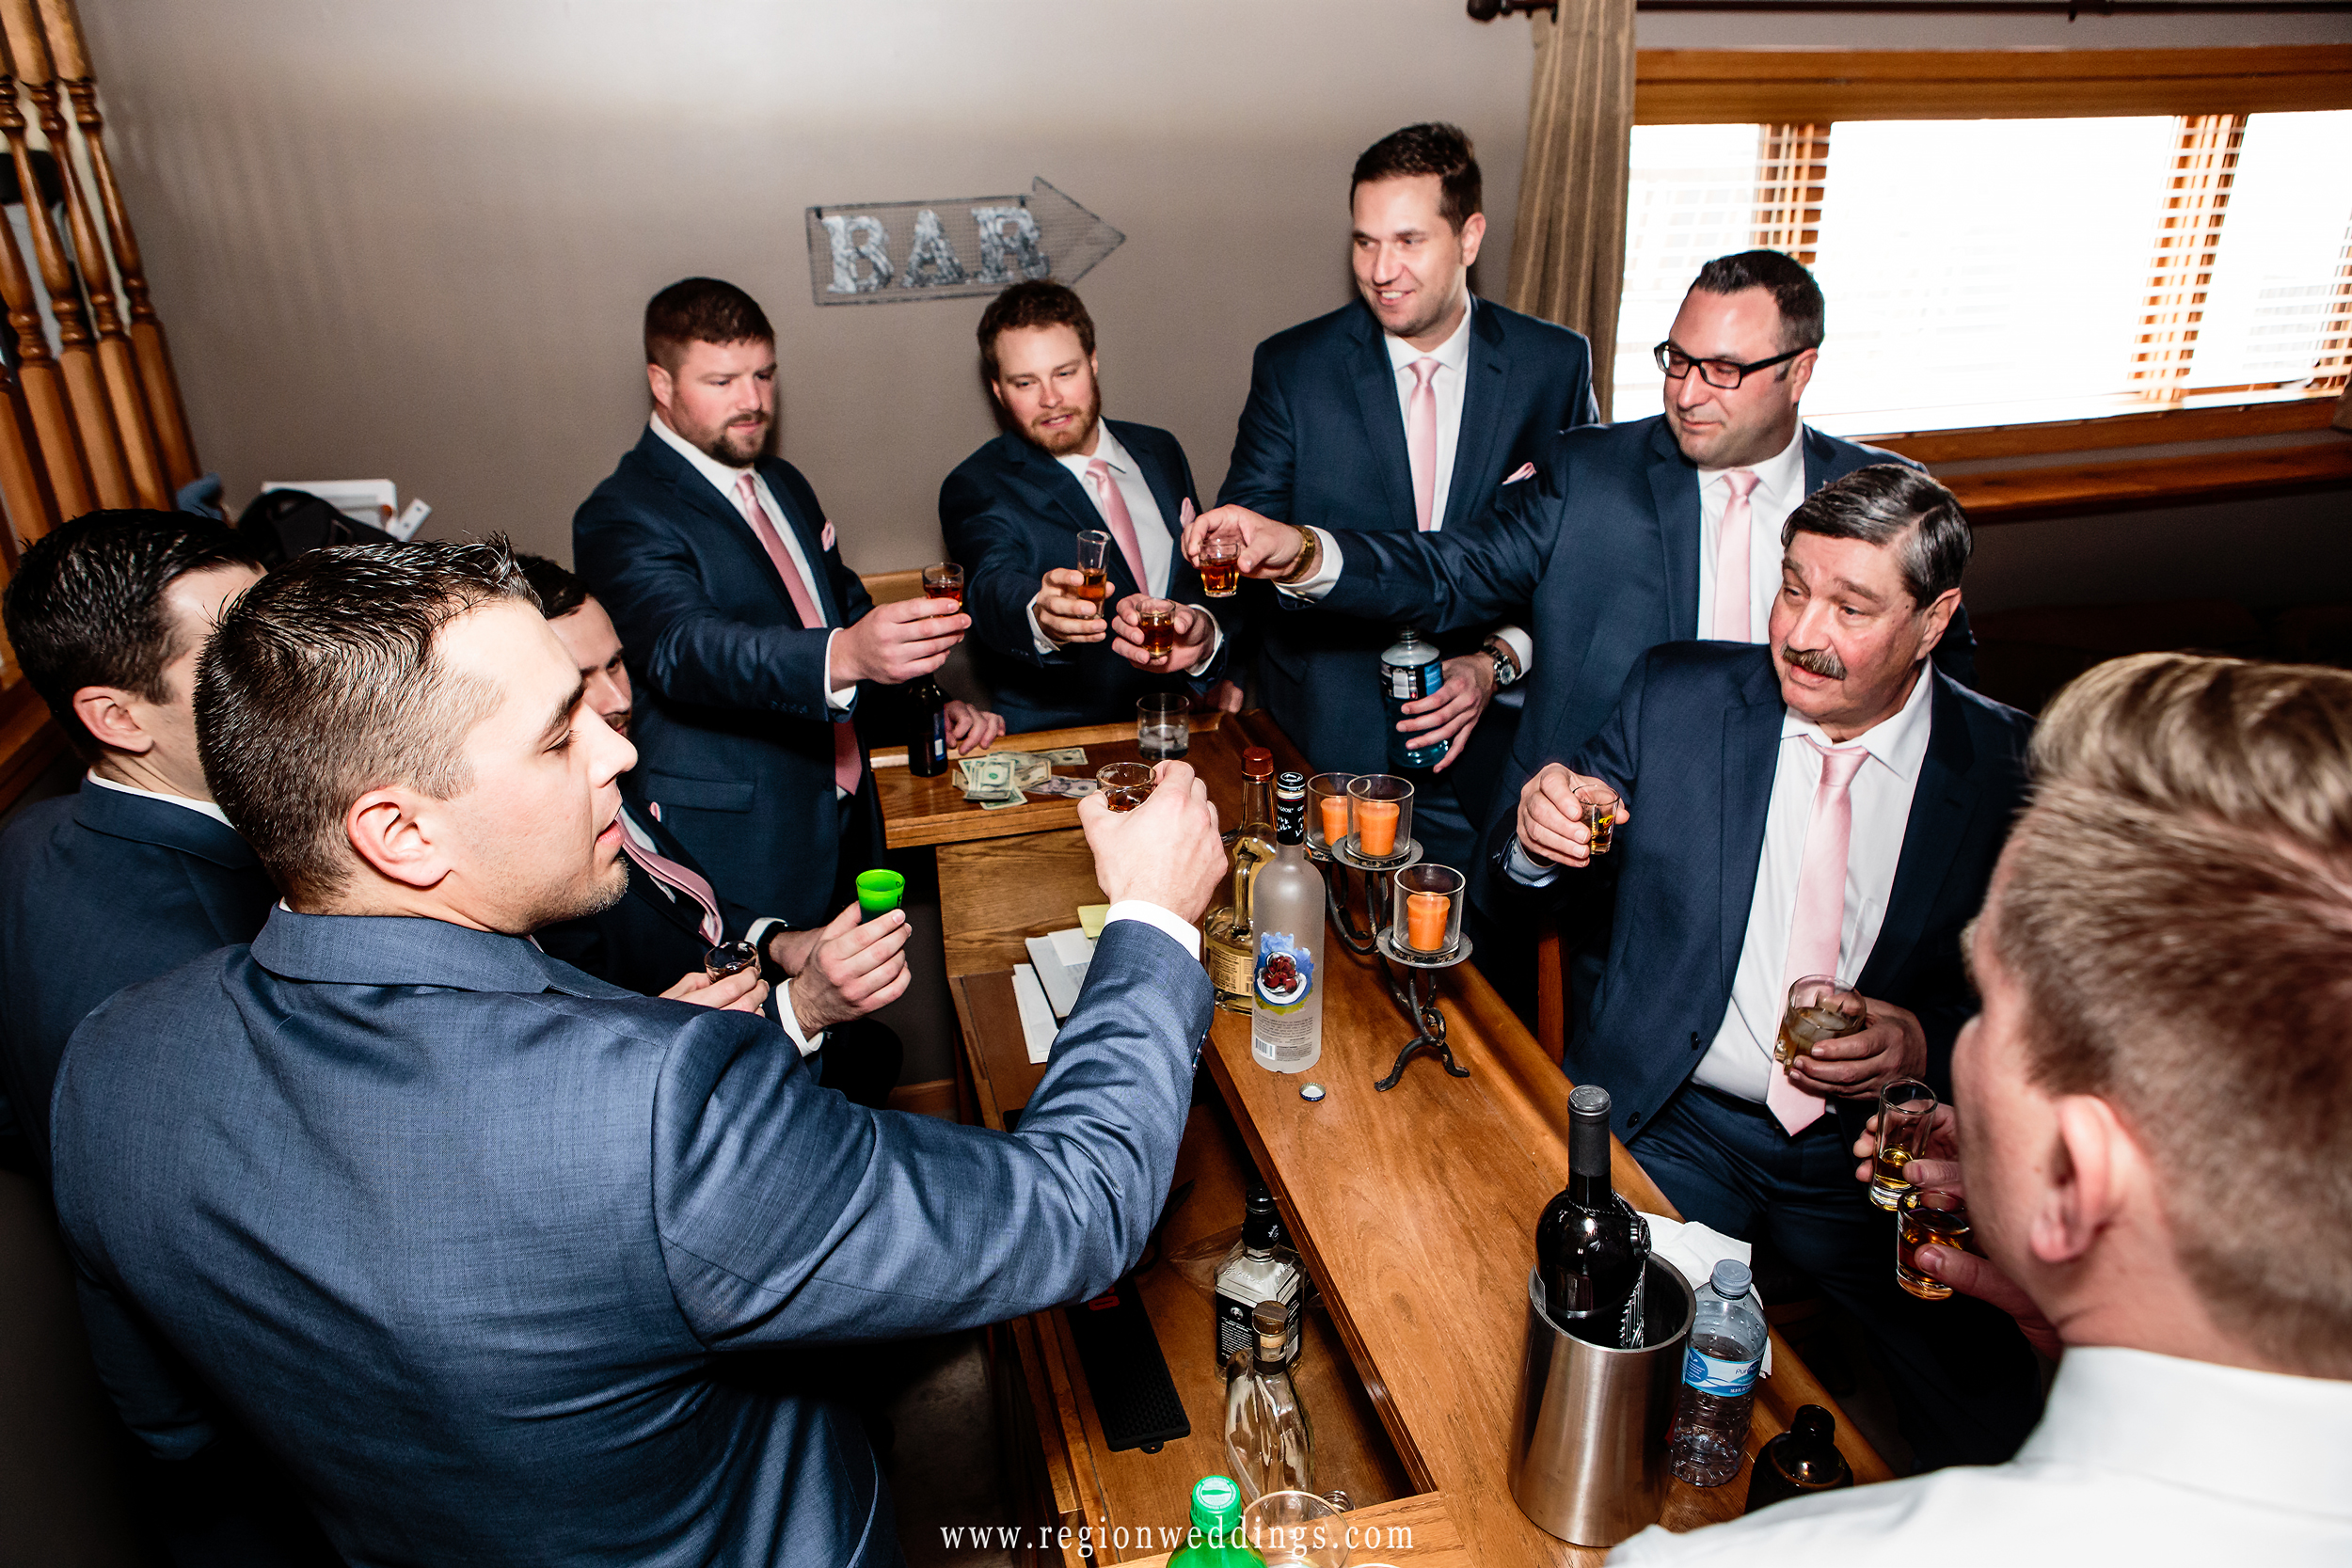 The groom and groomsmen toast to the big day ahead.